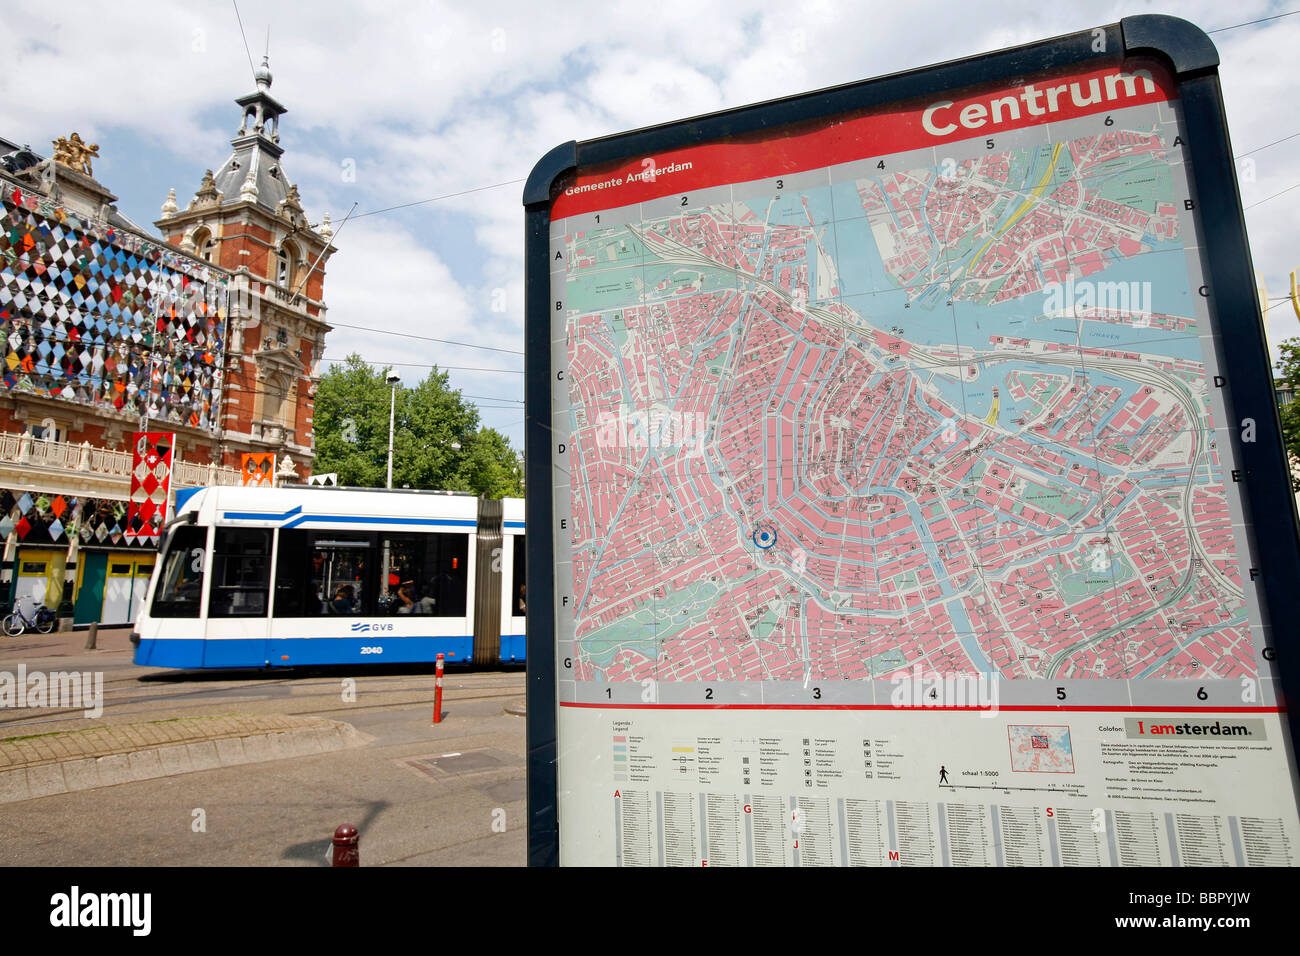 Trams outside Amsterdam Central Picture of GVB